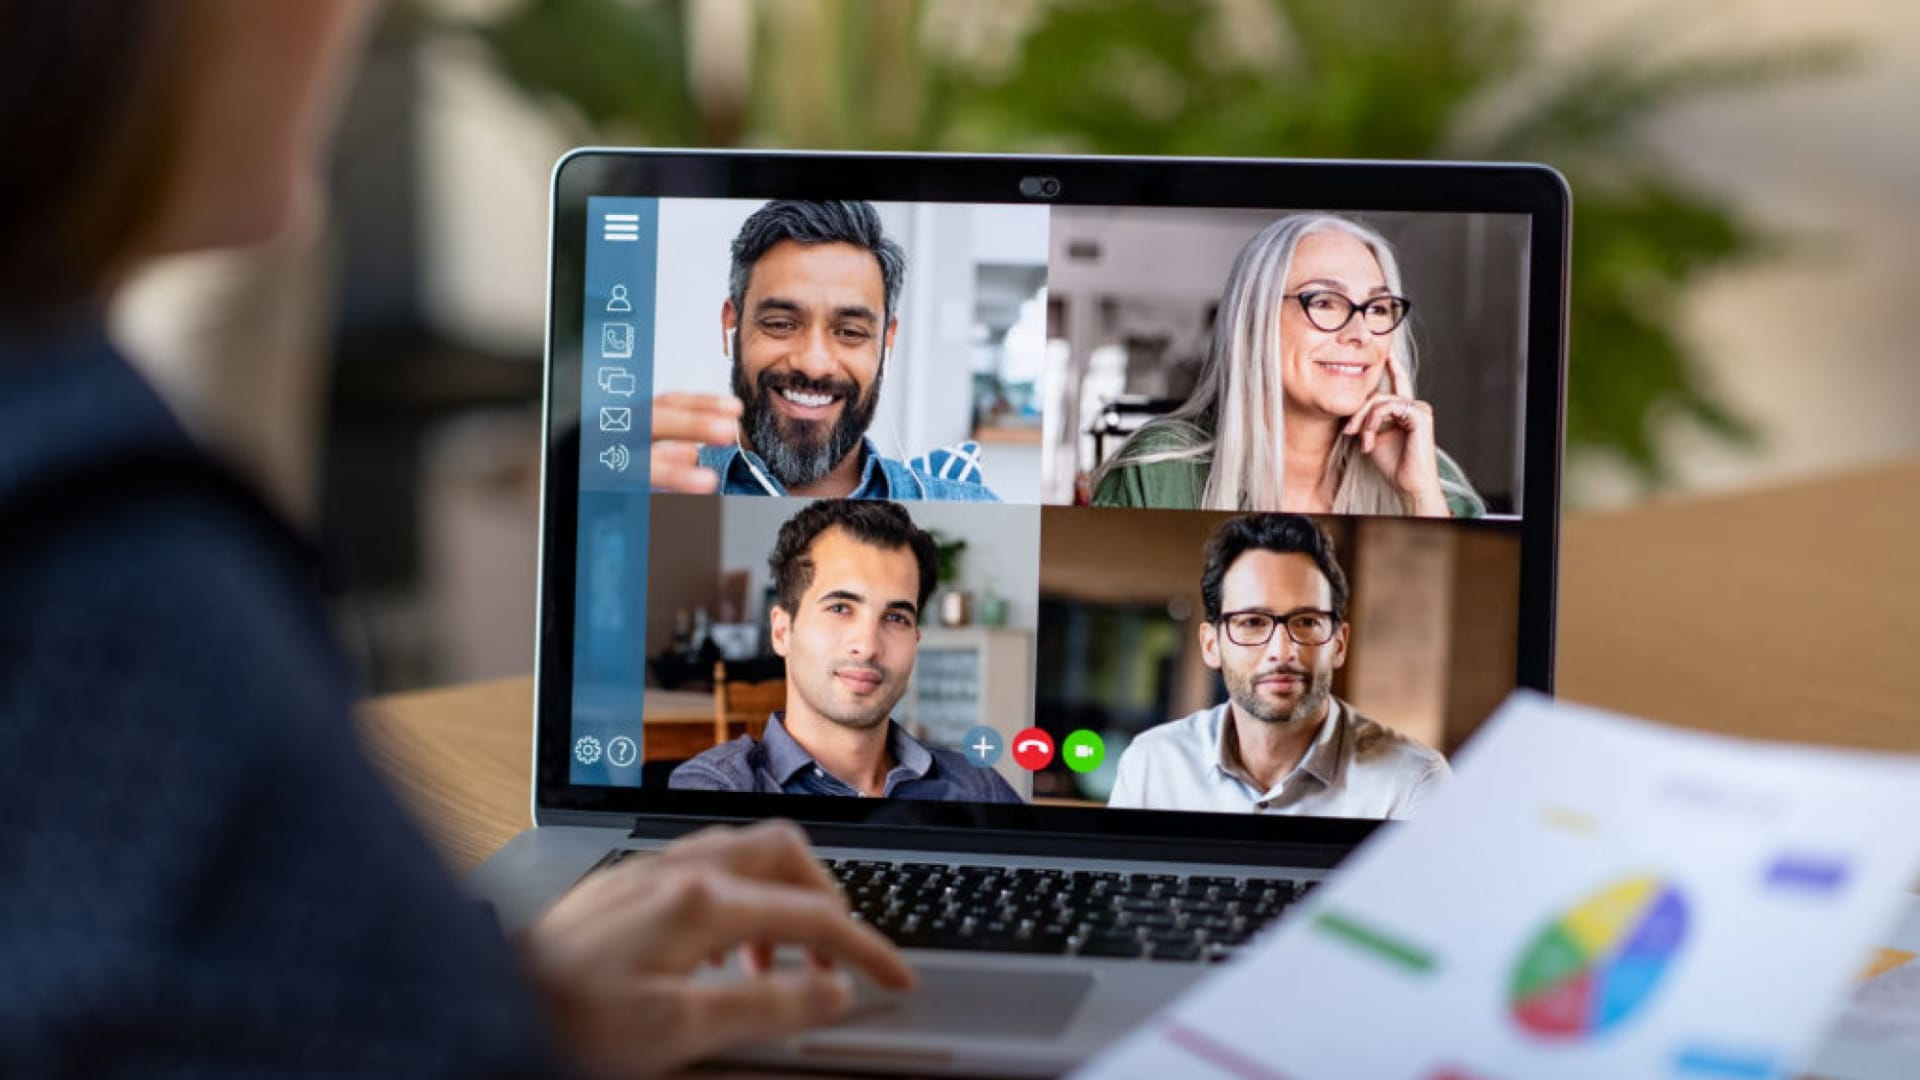 How to Master the Art of Virtual Communication